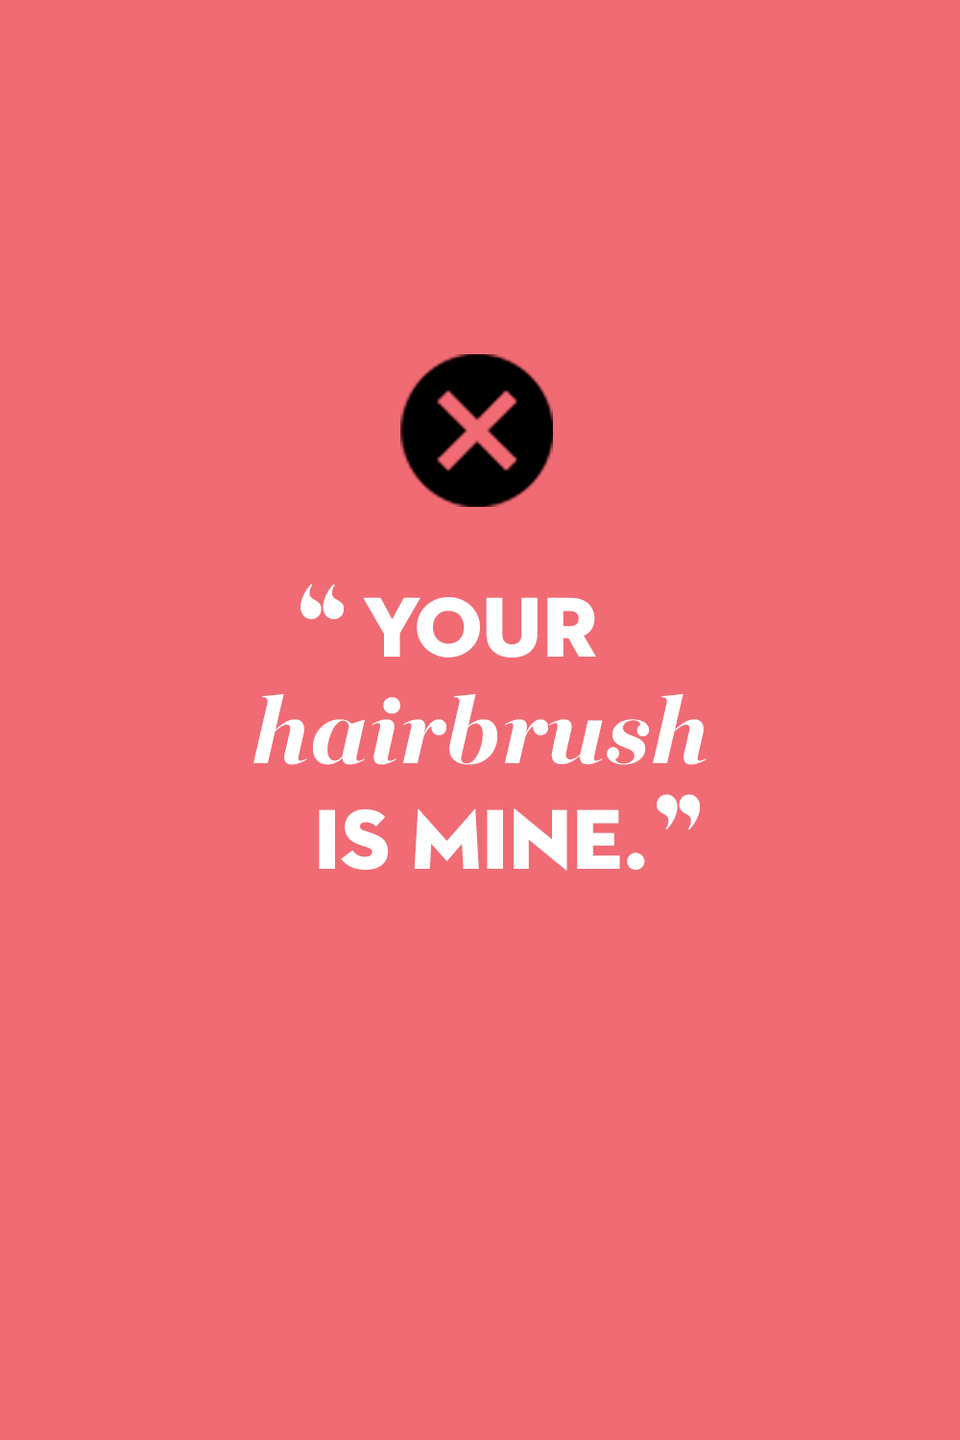 """<p>Don't worry, <a href=""""https://www.goodhousekeeping.com/beauty/hair/g2918/hair-brush-guide/"""" rel=""""nofollow noopener"""" target=""""_blank"""" data-ylk=""""slk:your hairbrush"""" class=""""link rapid-noclick-resp"""">your hairbrush</a> is safe. Originally recorded by country artist Mark Wills, the boy band actually crooned, """"Your hand brushes mine."""" </p>"""